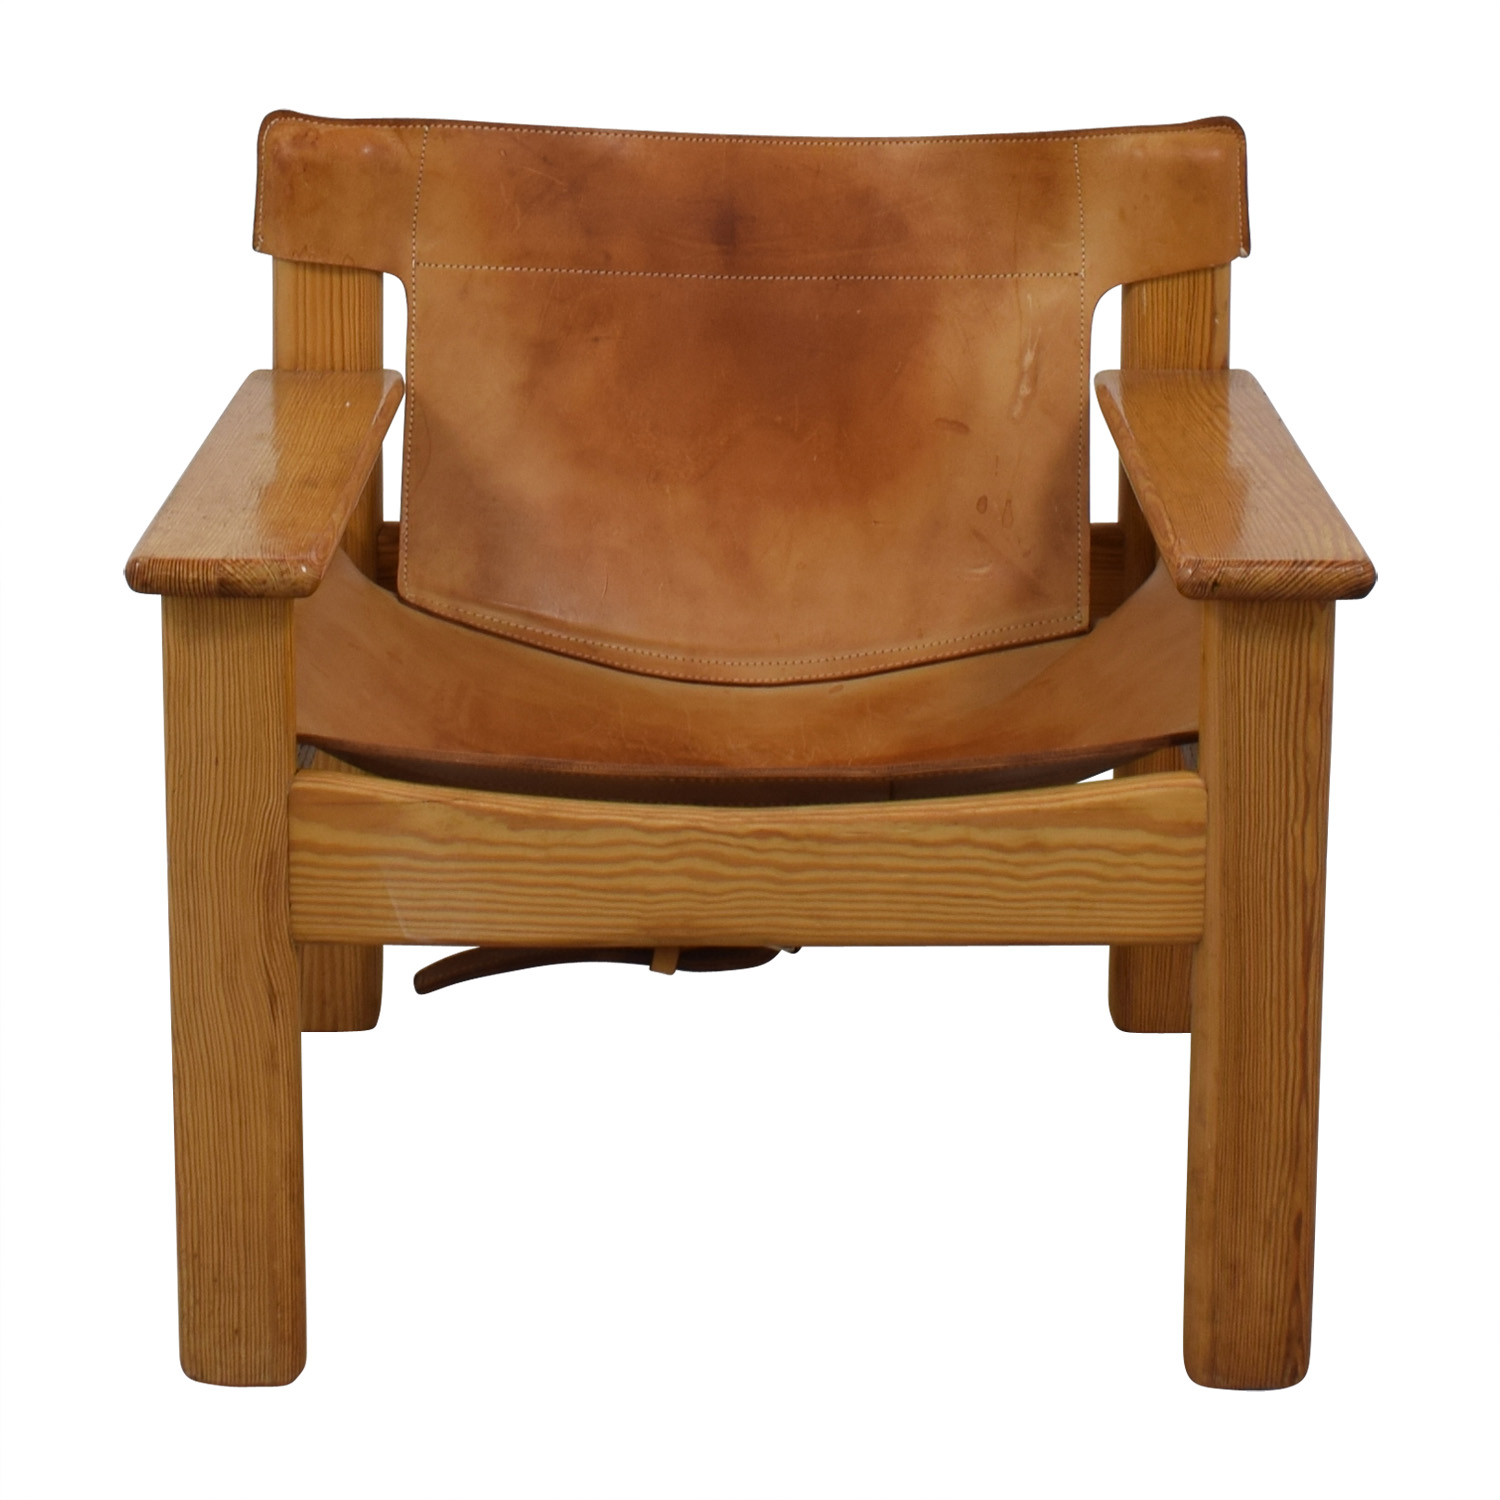 Brilliant 75 Off Vintage Cognac Leather Side Chair Chairs Ibusinesslaw Wood Chair Design Ideas Ibusinesslaworg